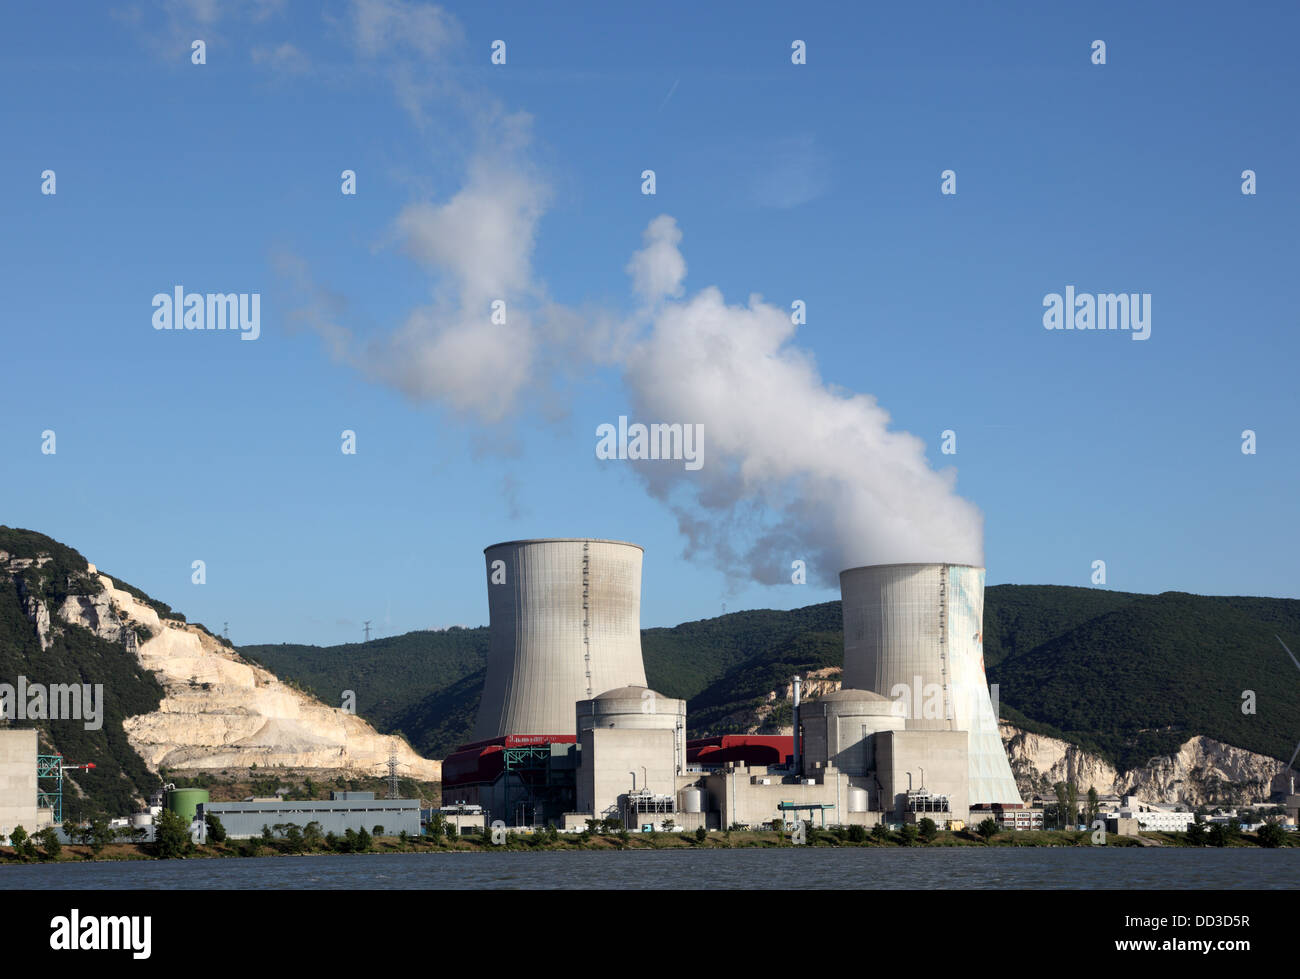 Nuclear electric power generating station - Stock Image